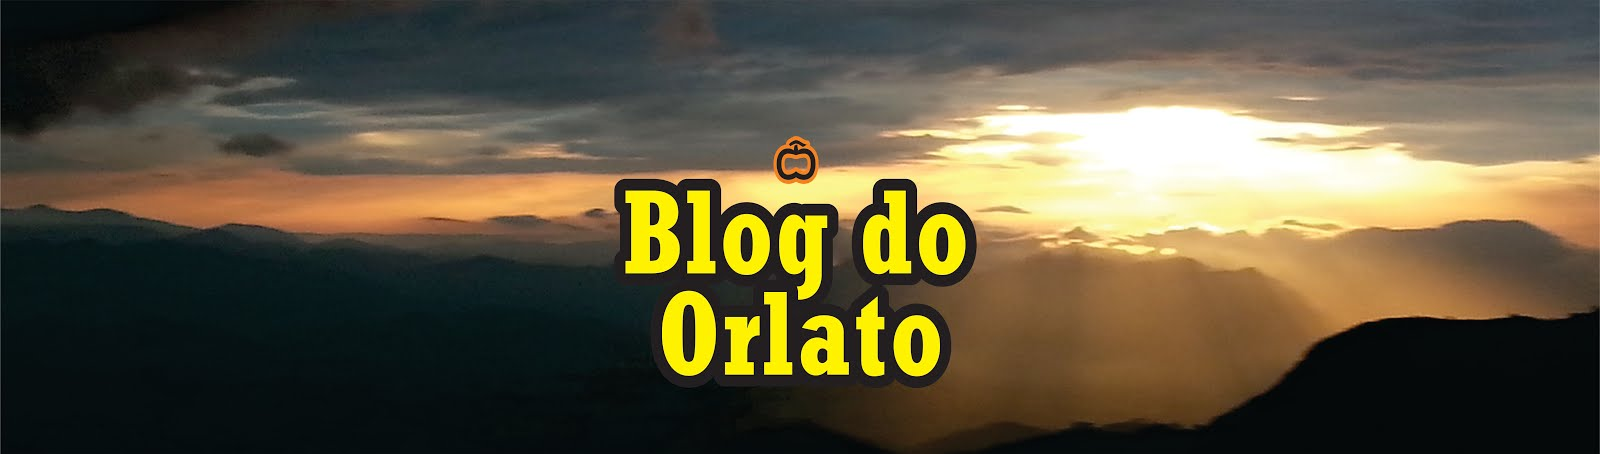 BLOG DO ORLATO